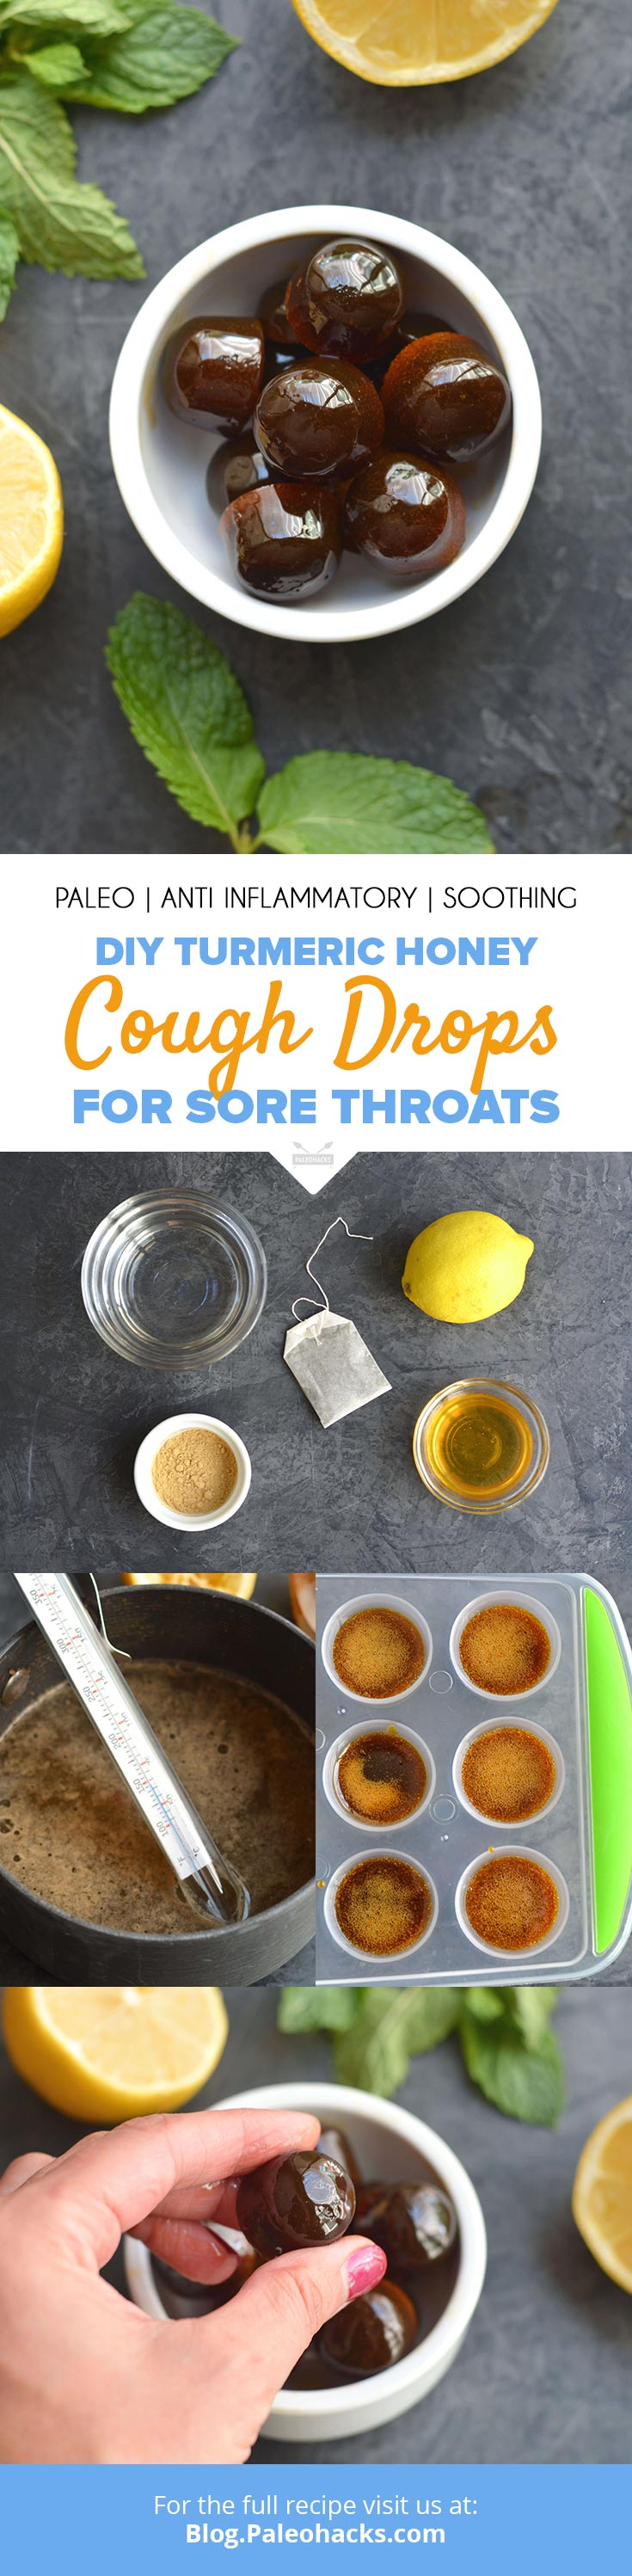 Diy turmeric honey cough drops for sore throats anti inflammatory pin diy turmeric honey cough drops for sore forumfinder Images